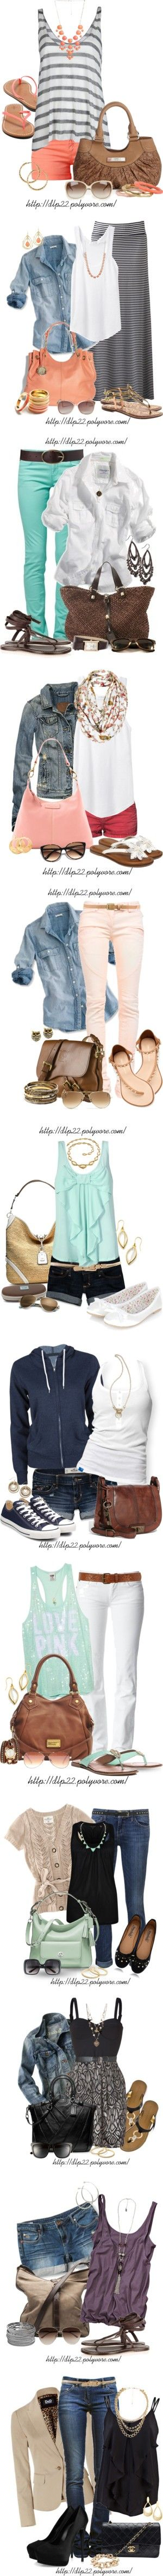 Spring and summer outfits - love all of these